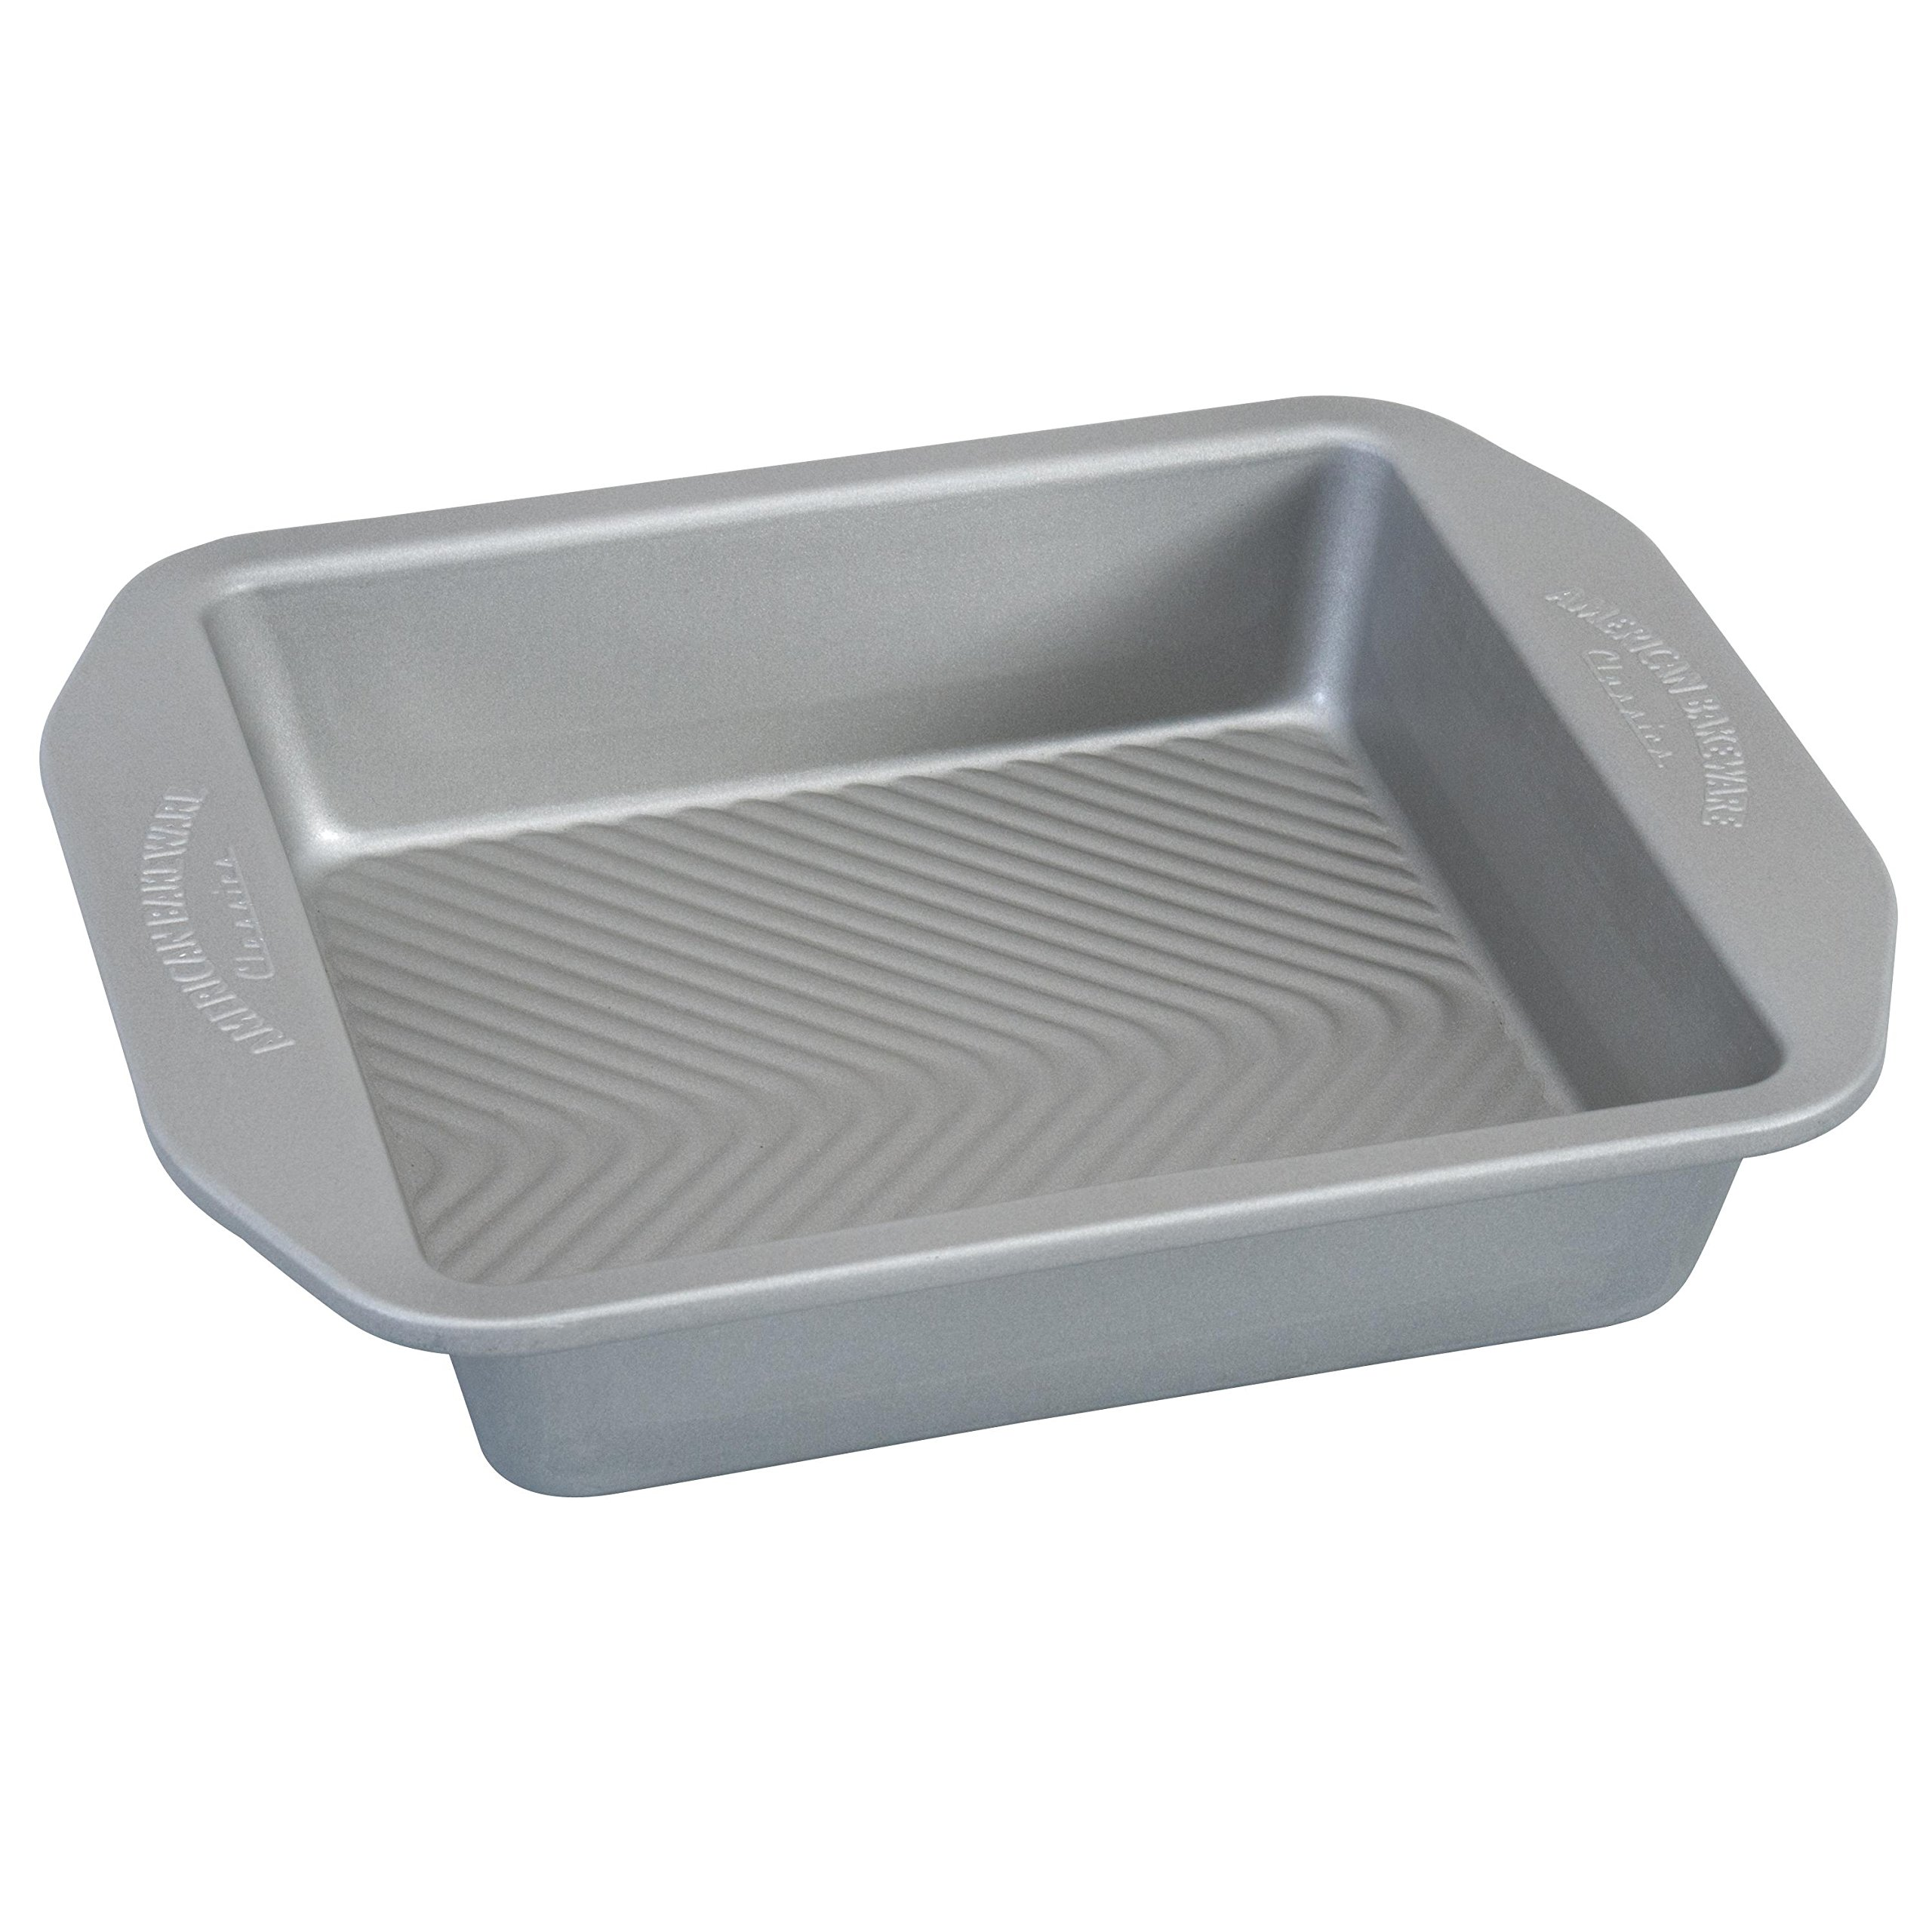 USA Pan 1120BW-2-ABC American Bakeware Classics 8 inch Square Baking Pan, Aluminized Steel